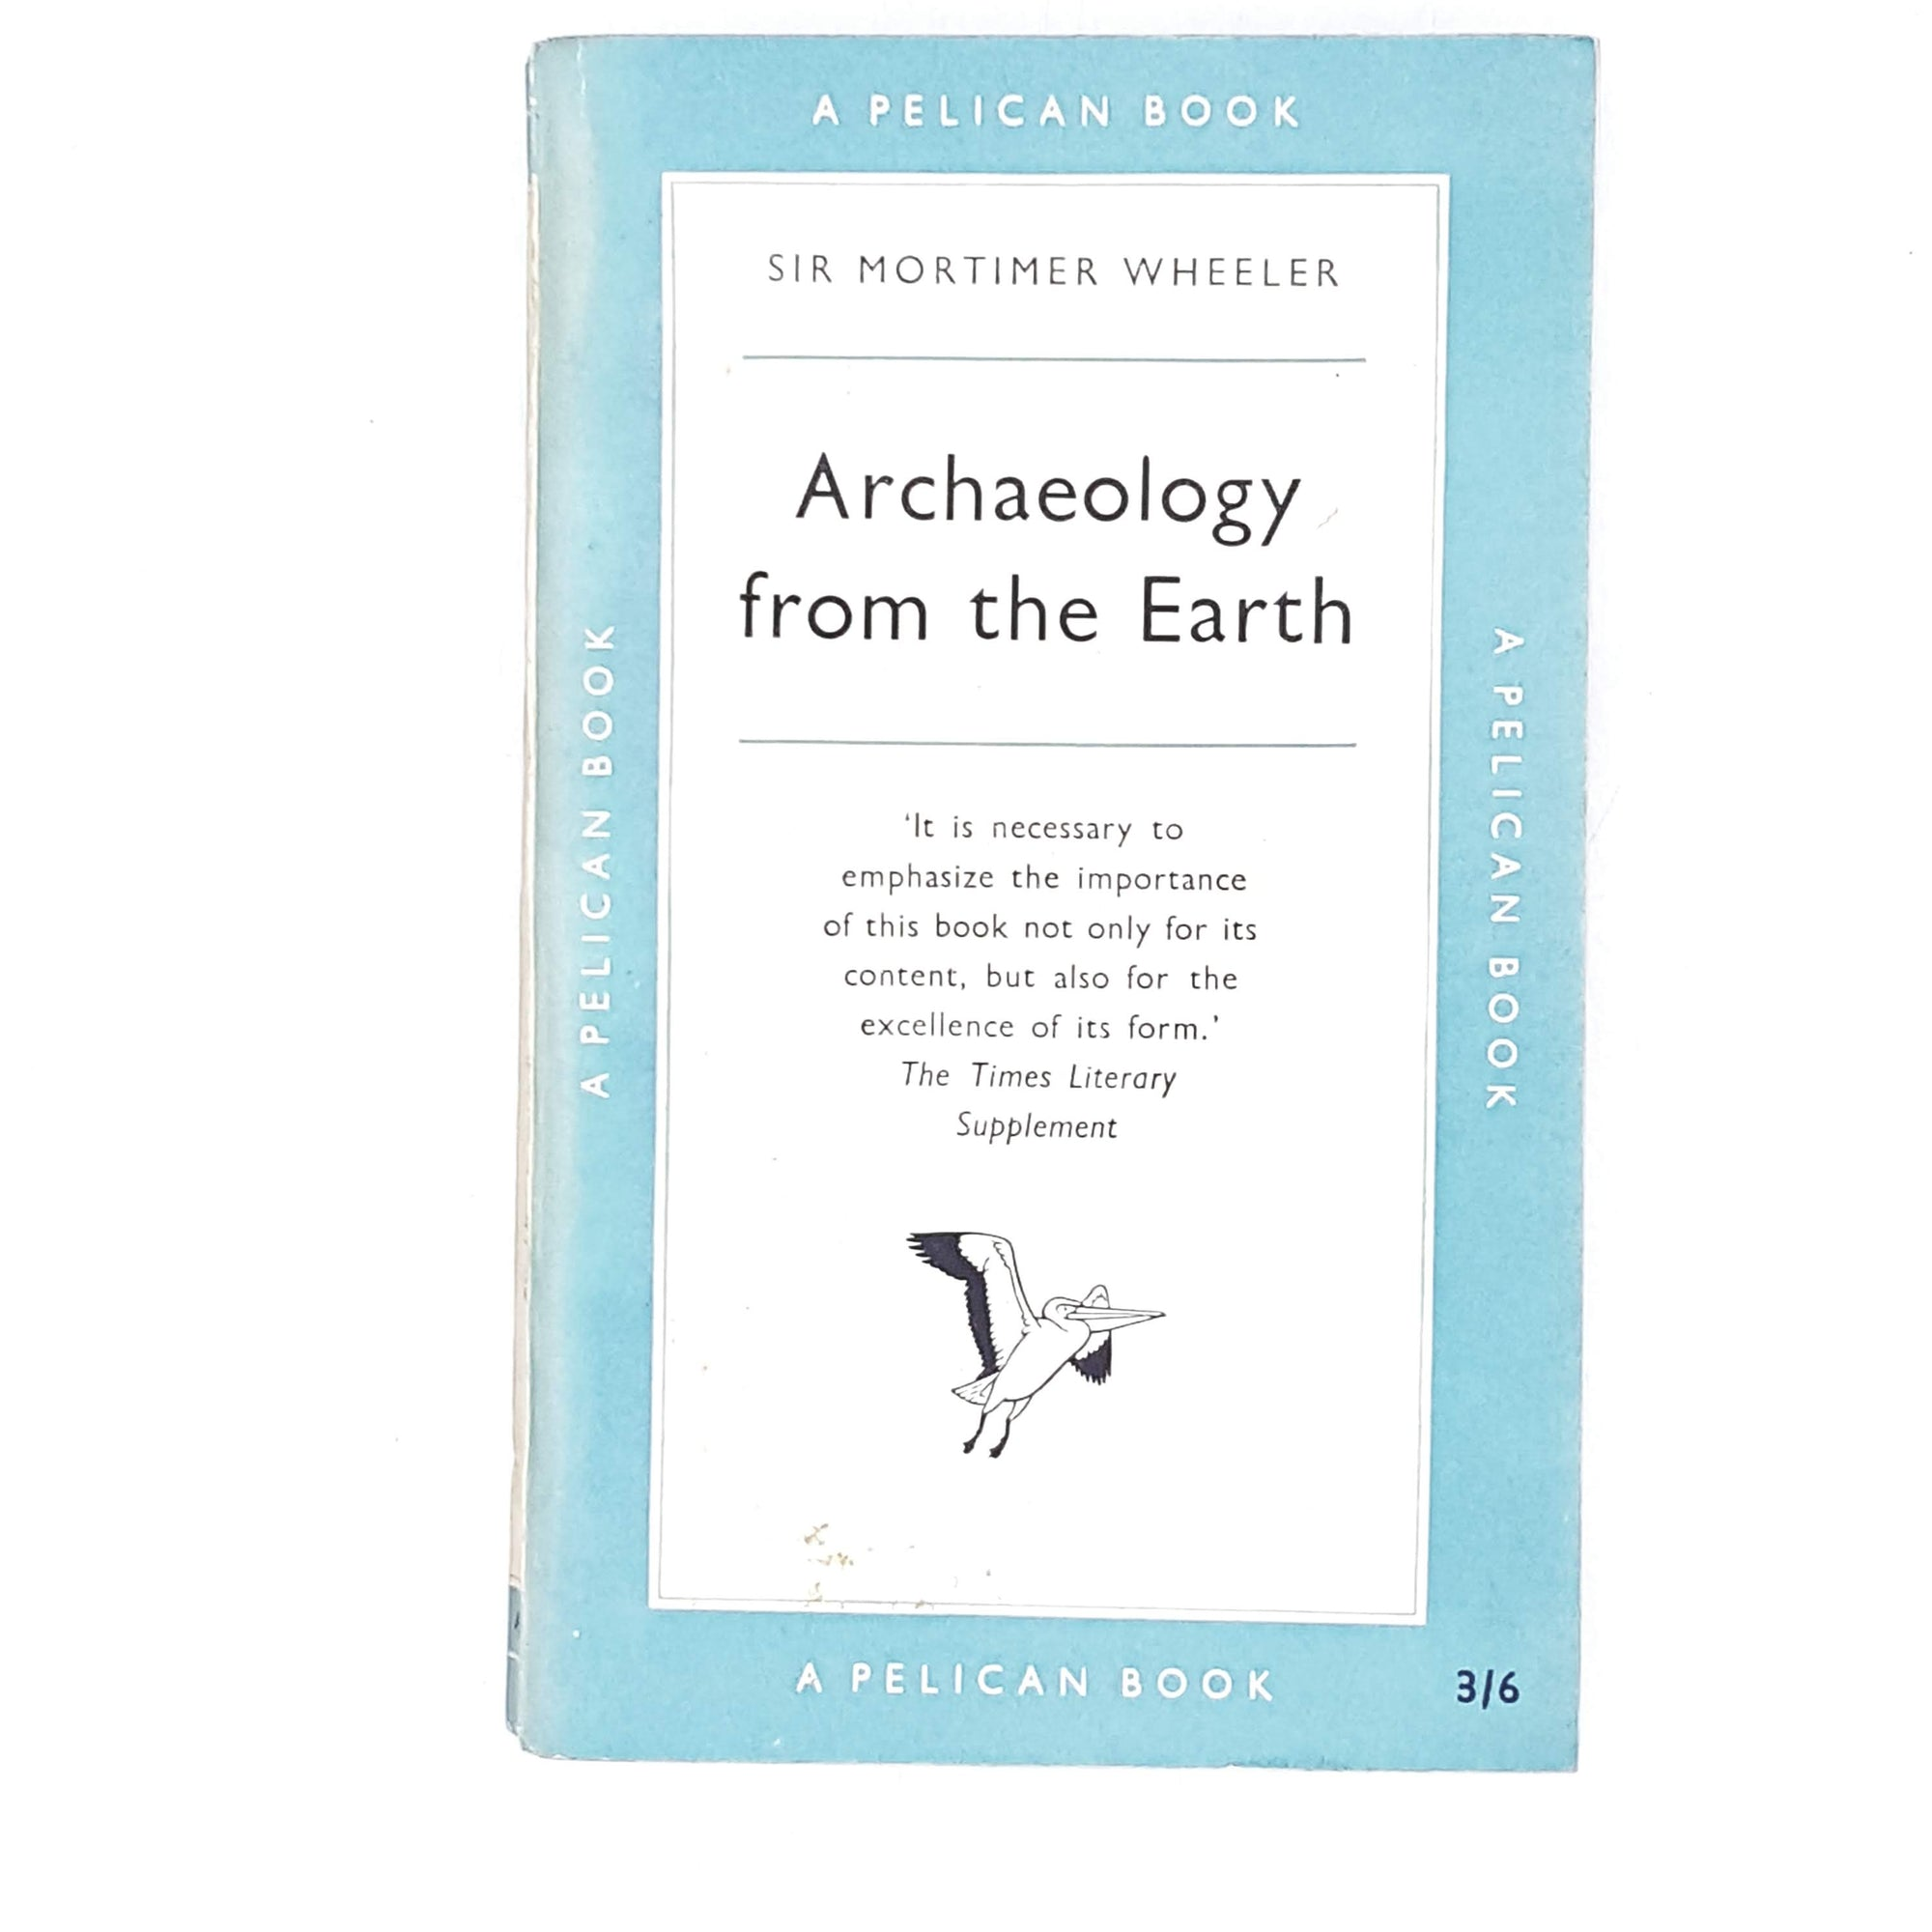 vintage-pelican-archaeology-from-the-earth-by-sir-mortimer-wheeler-1956pale-blue-country-house-library